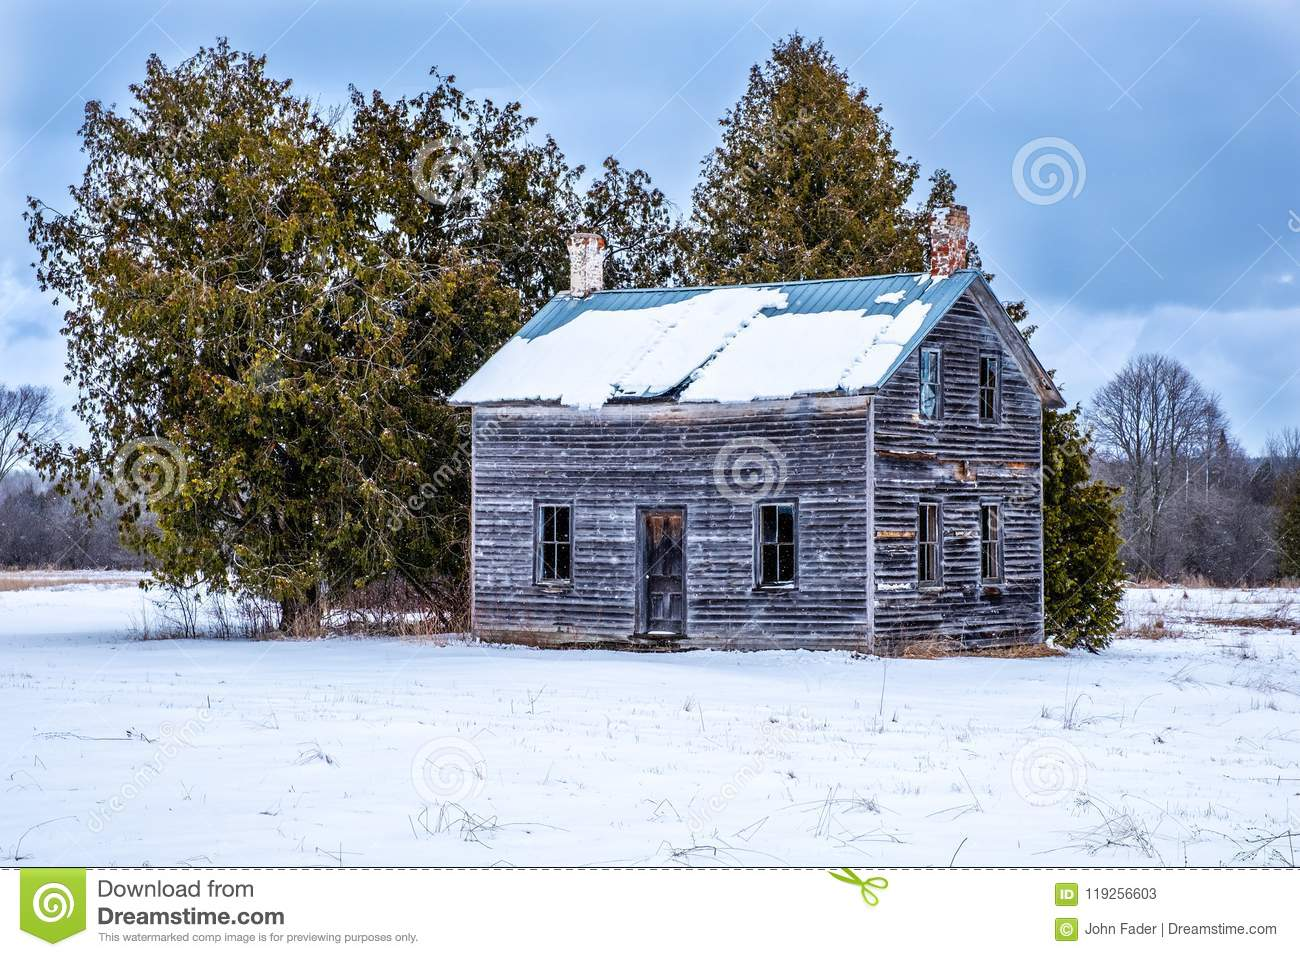 Small Abandoned Farm House In Winter Stock Image - Image of